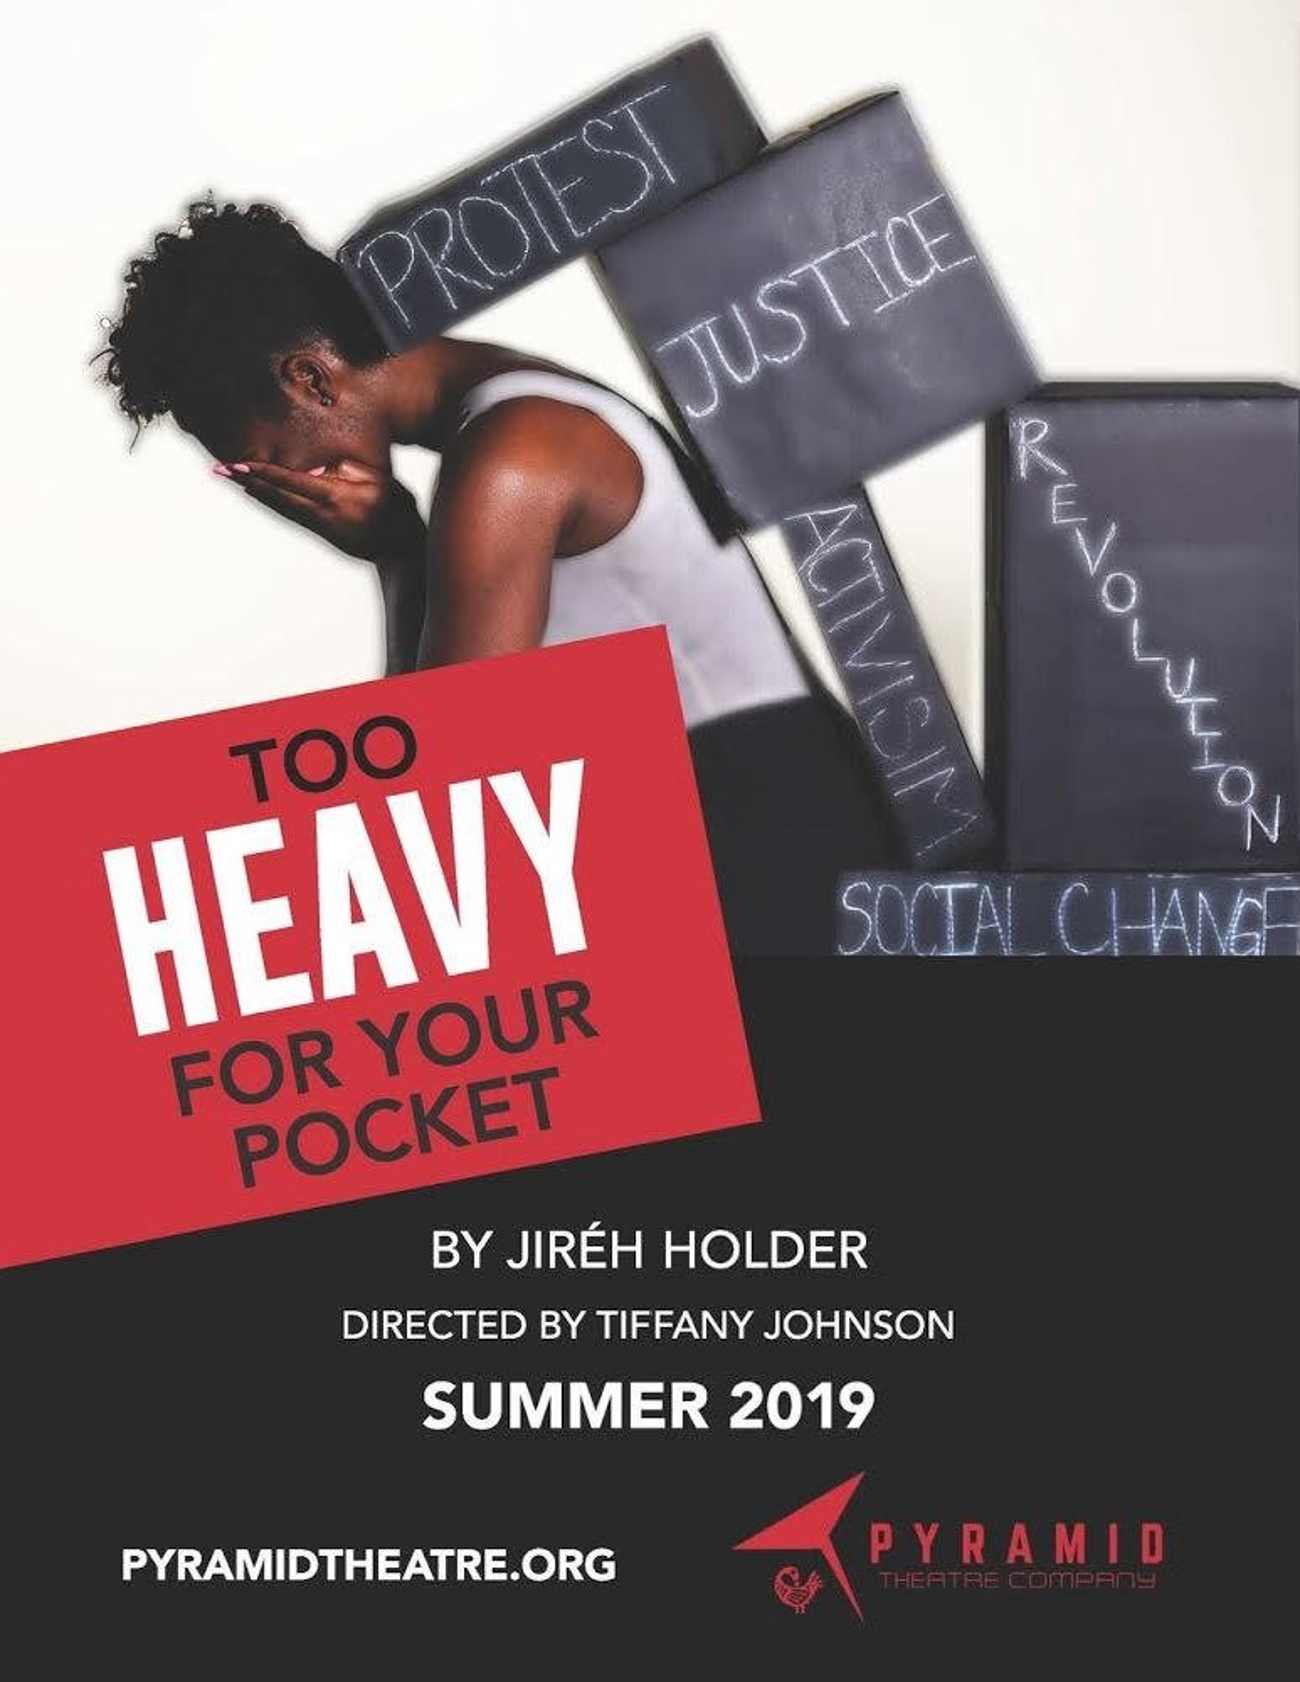 BWW Review: TOO HEAVY FOR YOUR POCKET at Pyramid Theatre: Looking Towards a Better Future